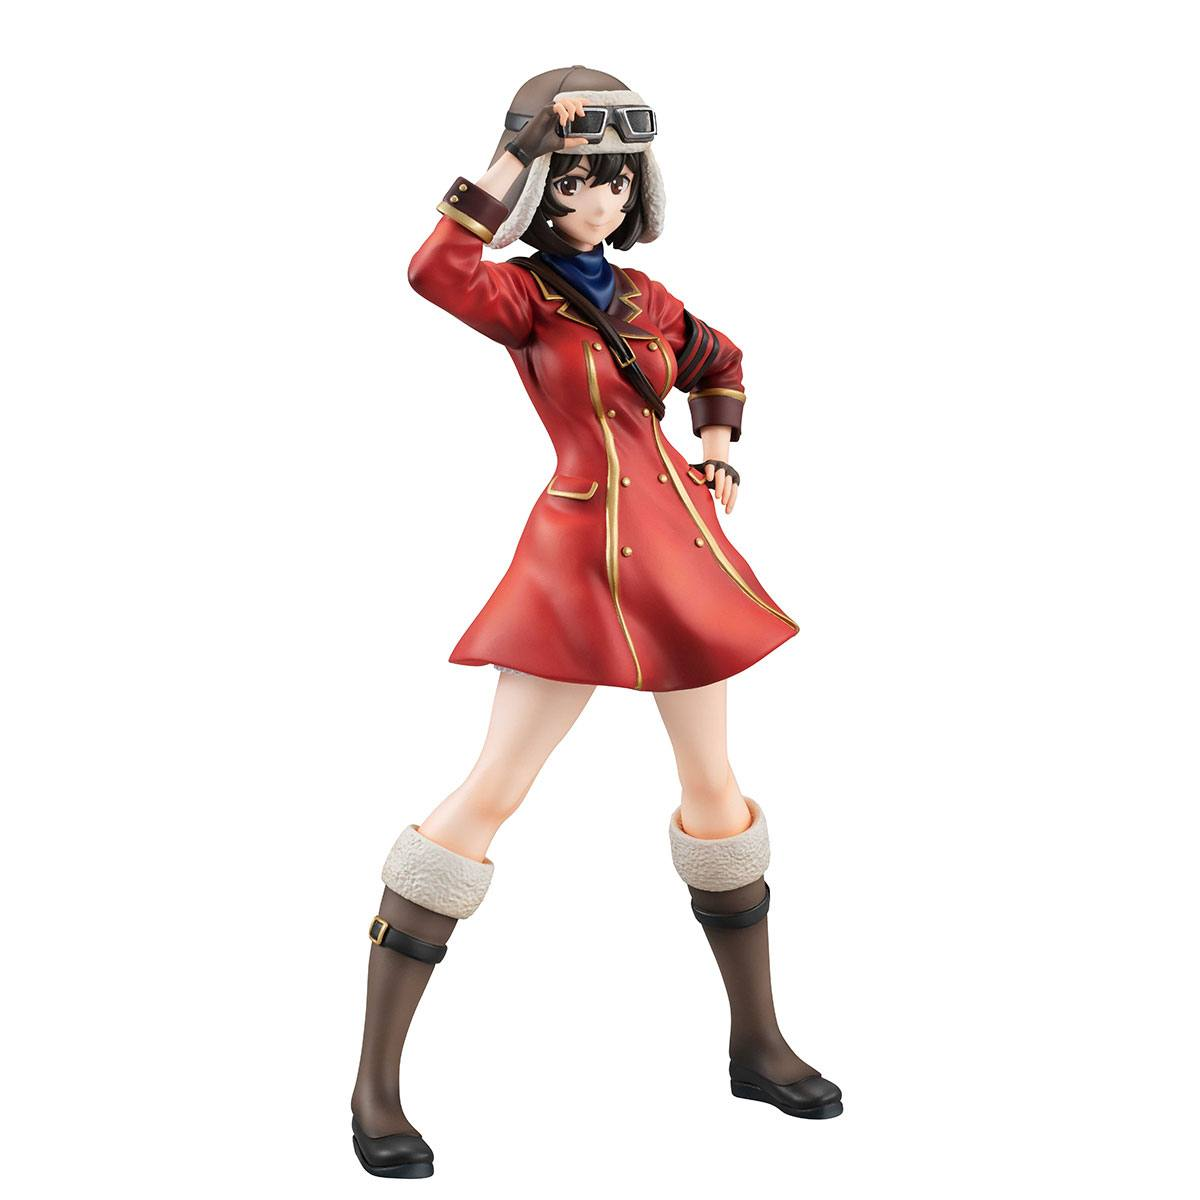 The Kotobuki Squadron in The Wilderness Gals PVC Statue Kylie 21 cm